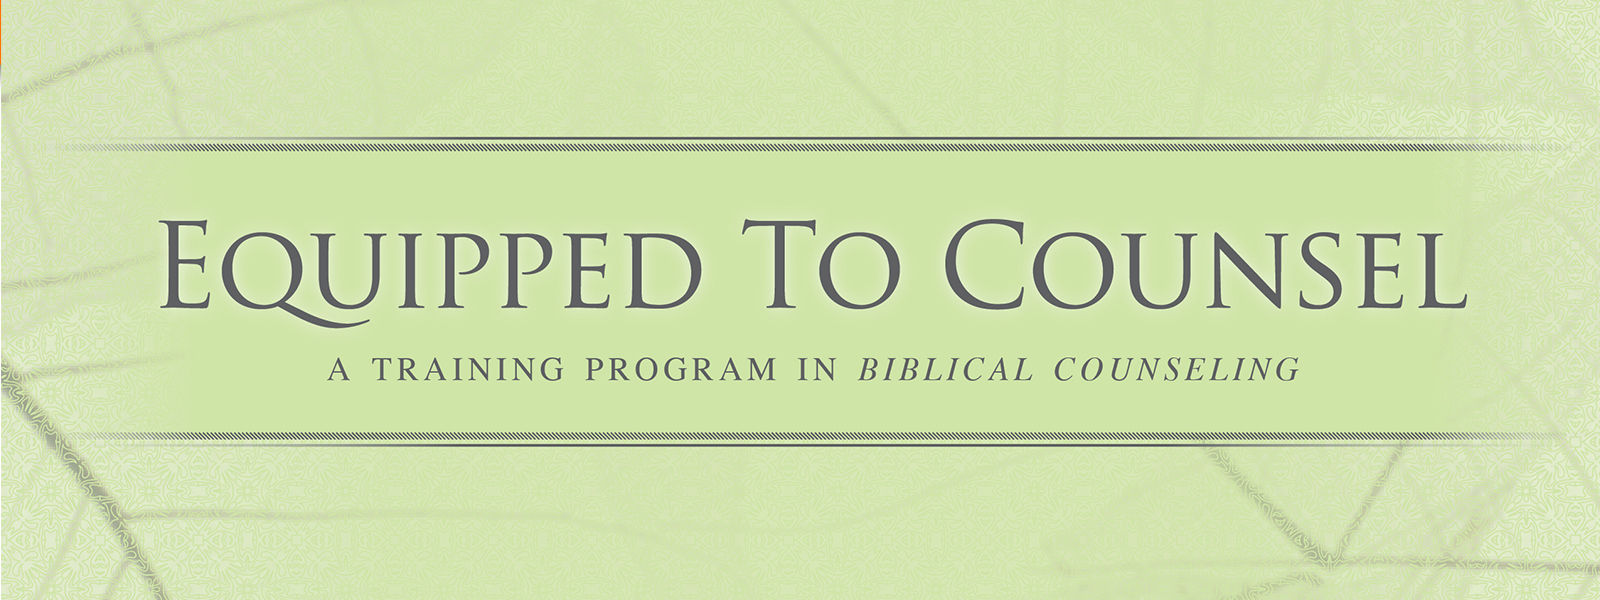 Equipped to Counsel Training Curriculum